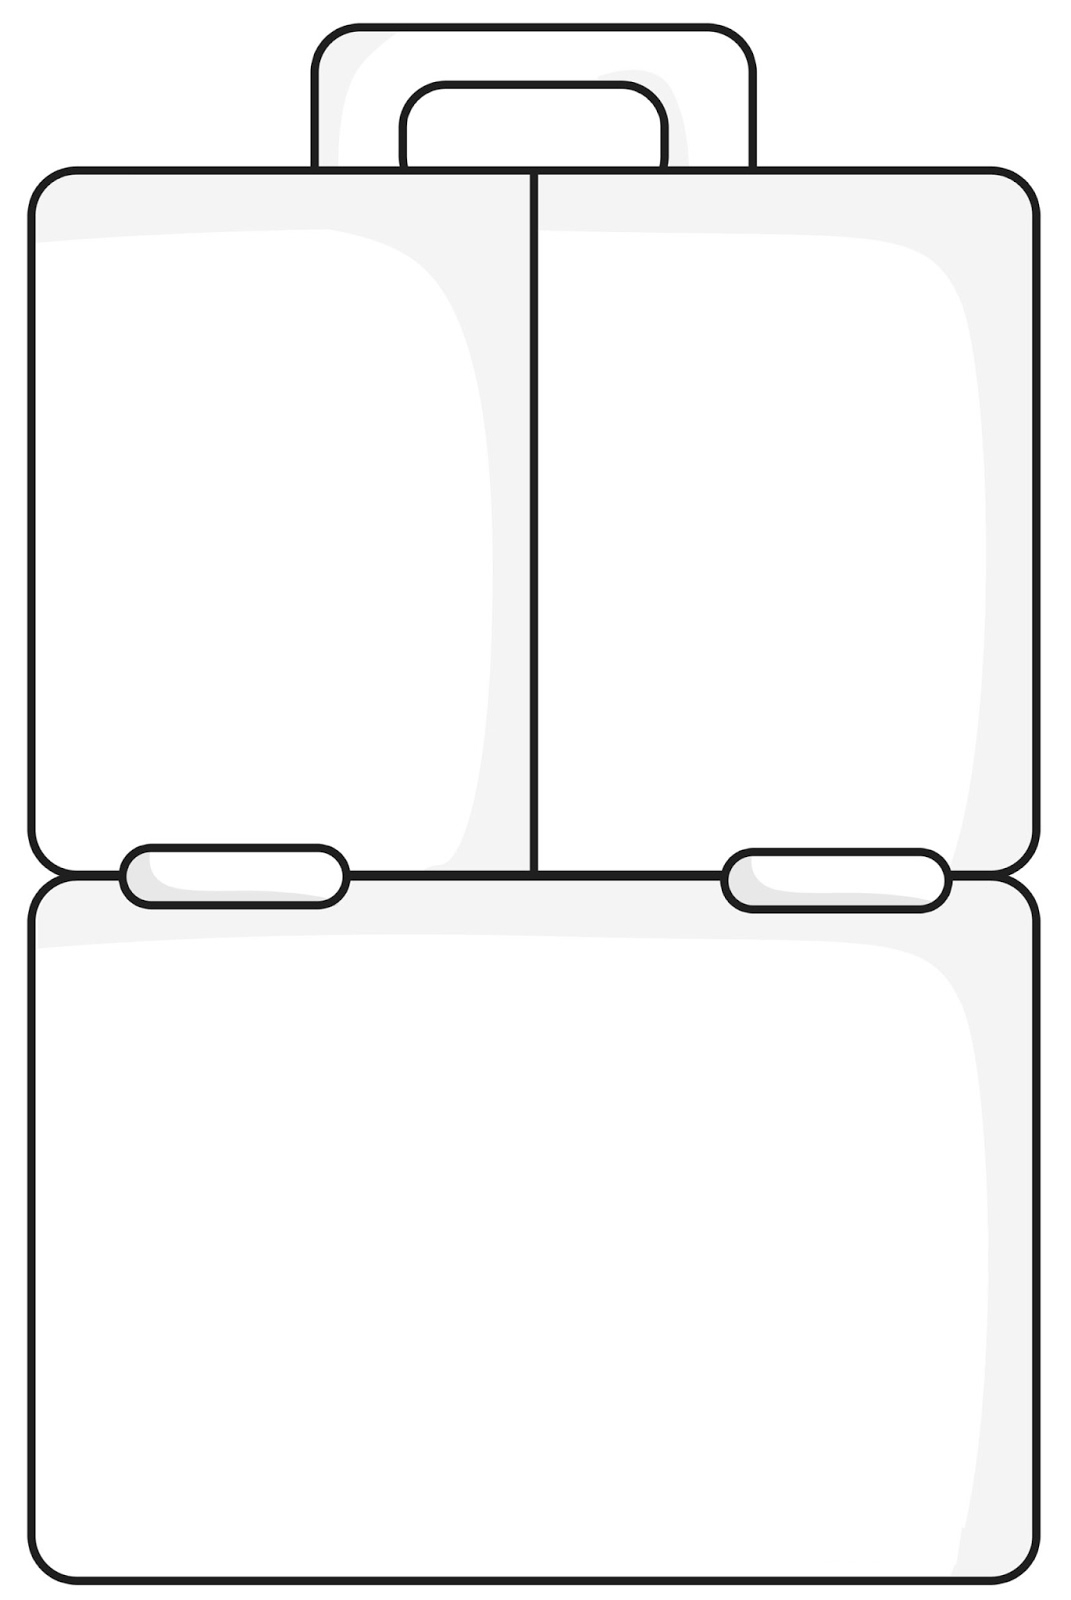 Pics For Gt Empty Lunch Box Clipart